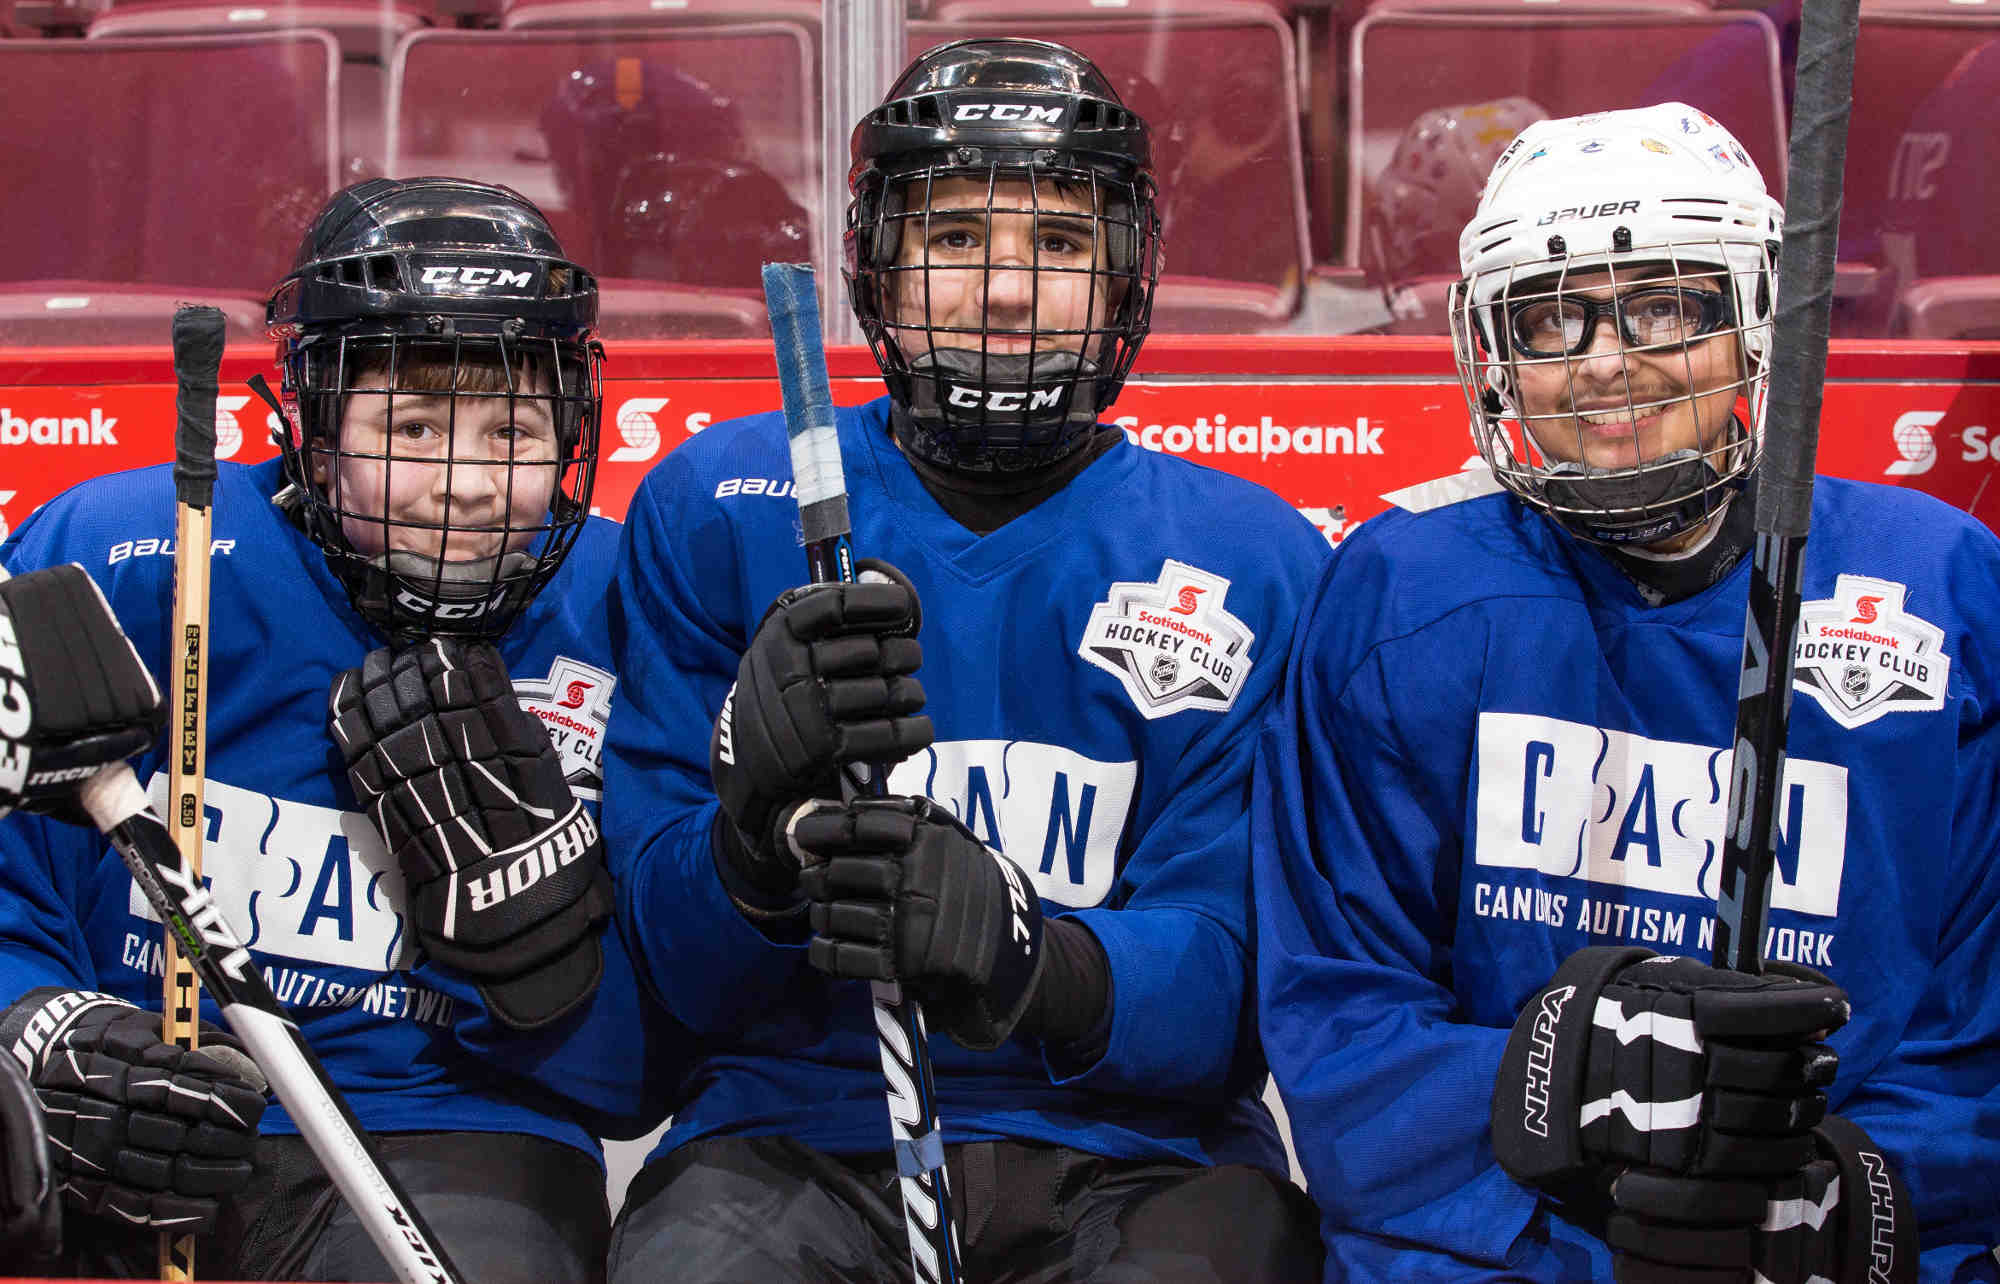 Three male youth hockey players pose for a photo while sitting on a bench together.